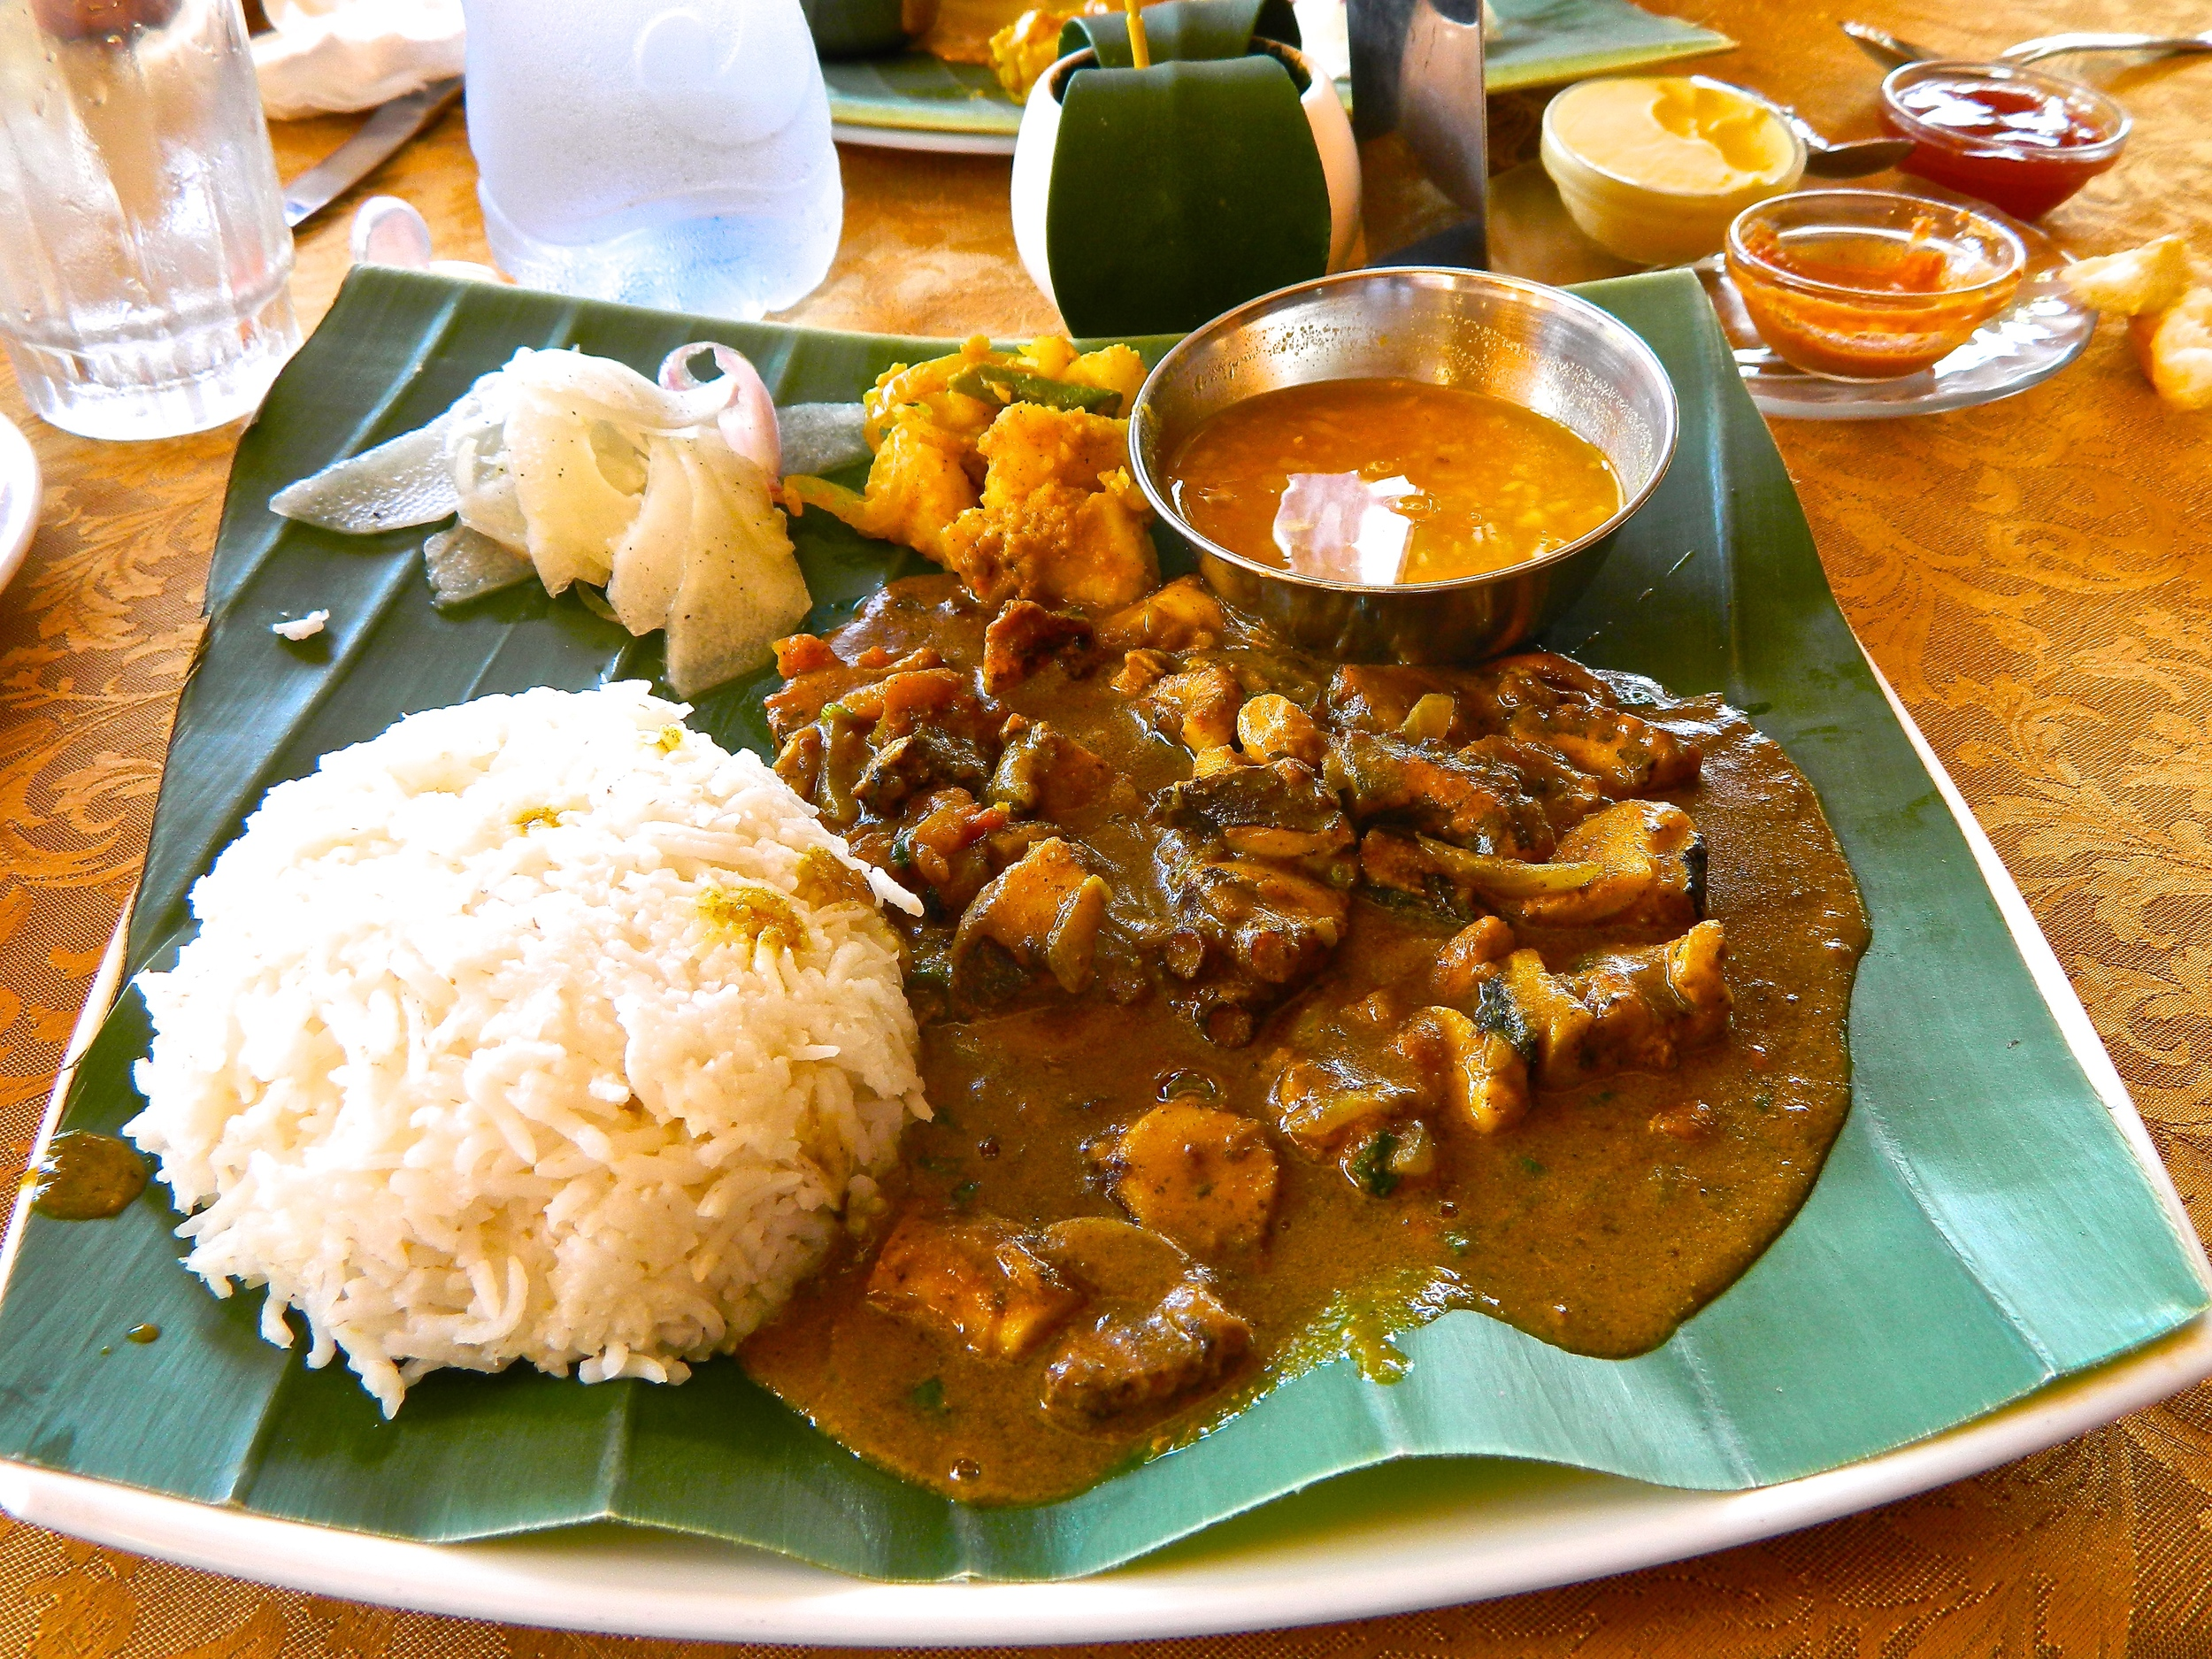 Octopus Curry with steamed rice, daikon salad, curried potatoes and saffron infused onion with chilly dipping sauce.